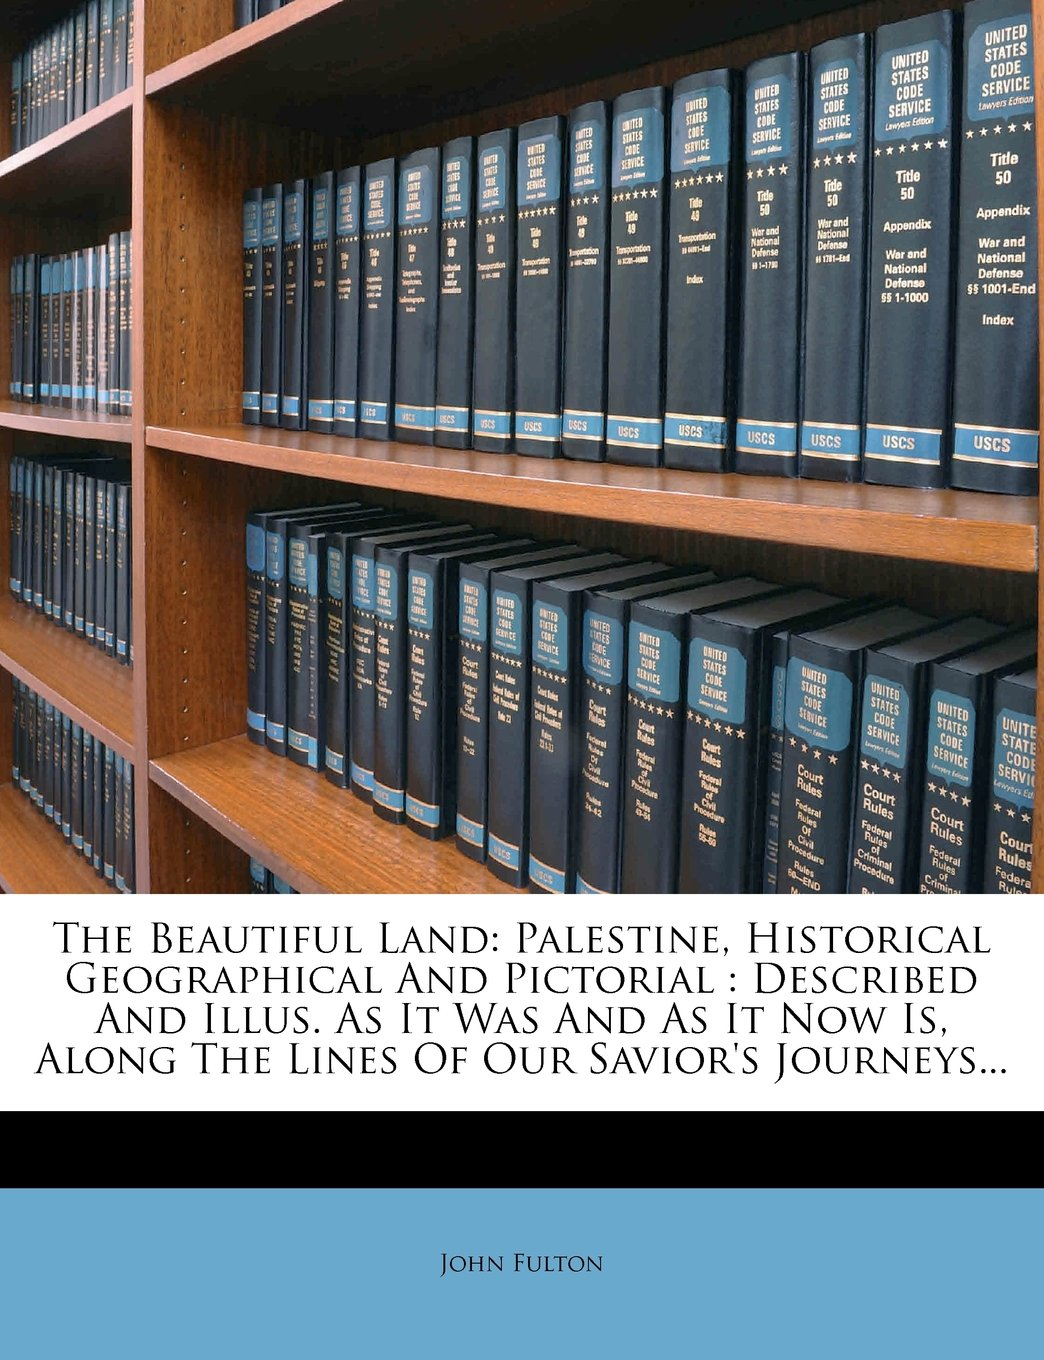 The Beautiful Land: Palestine, Historical Geographical And Pictorial : Described And Illus. As It Was And As It Now Is, Along The Lines Of Our Savior's Journeys... pdf epub